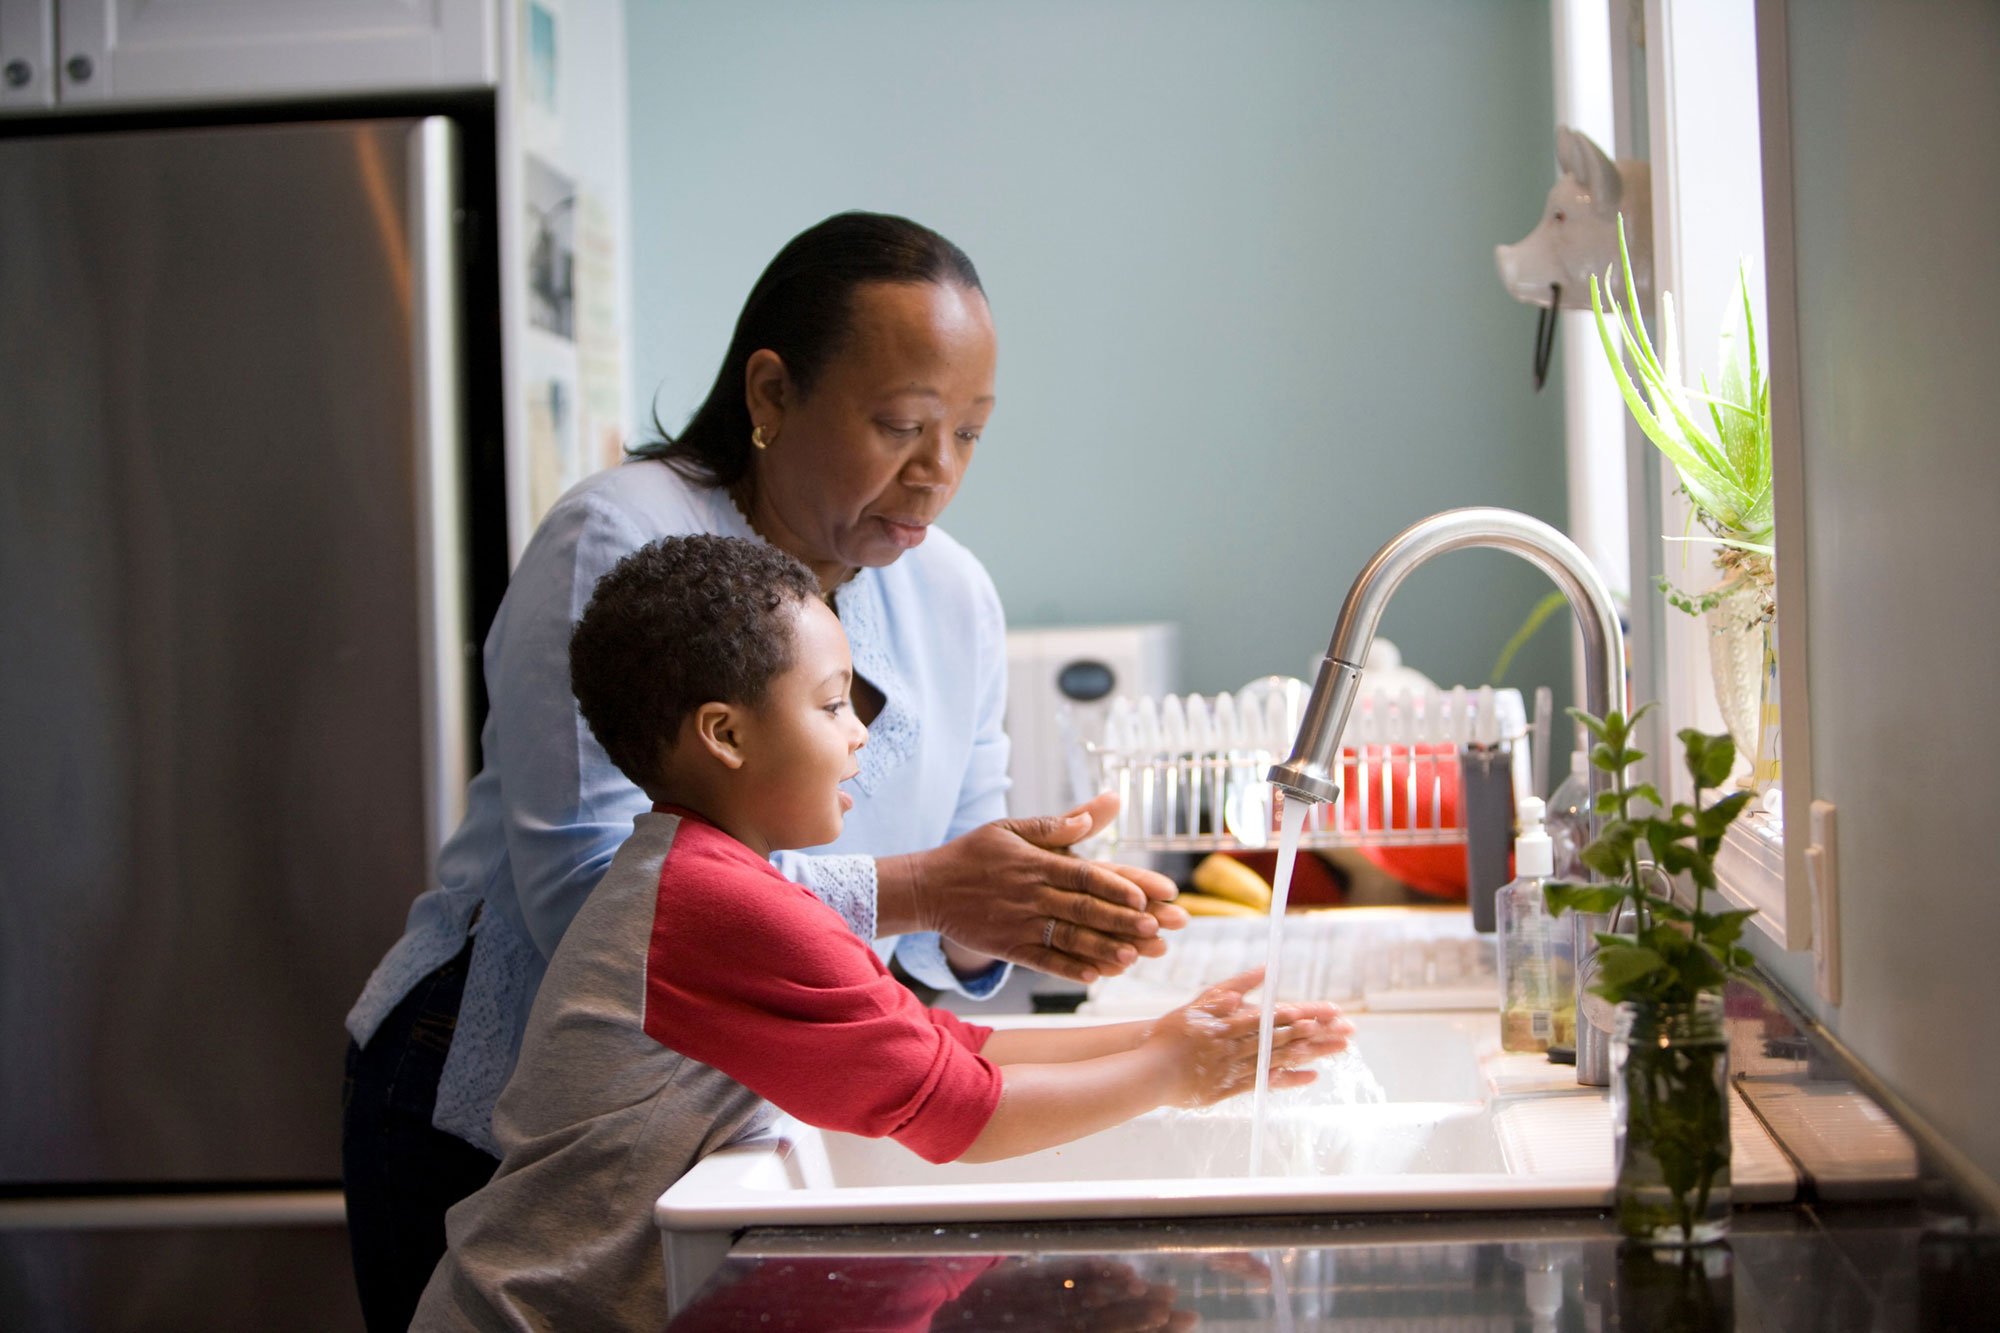 Adult and child washing hands at sink